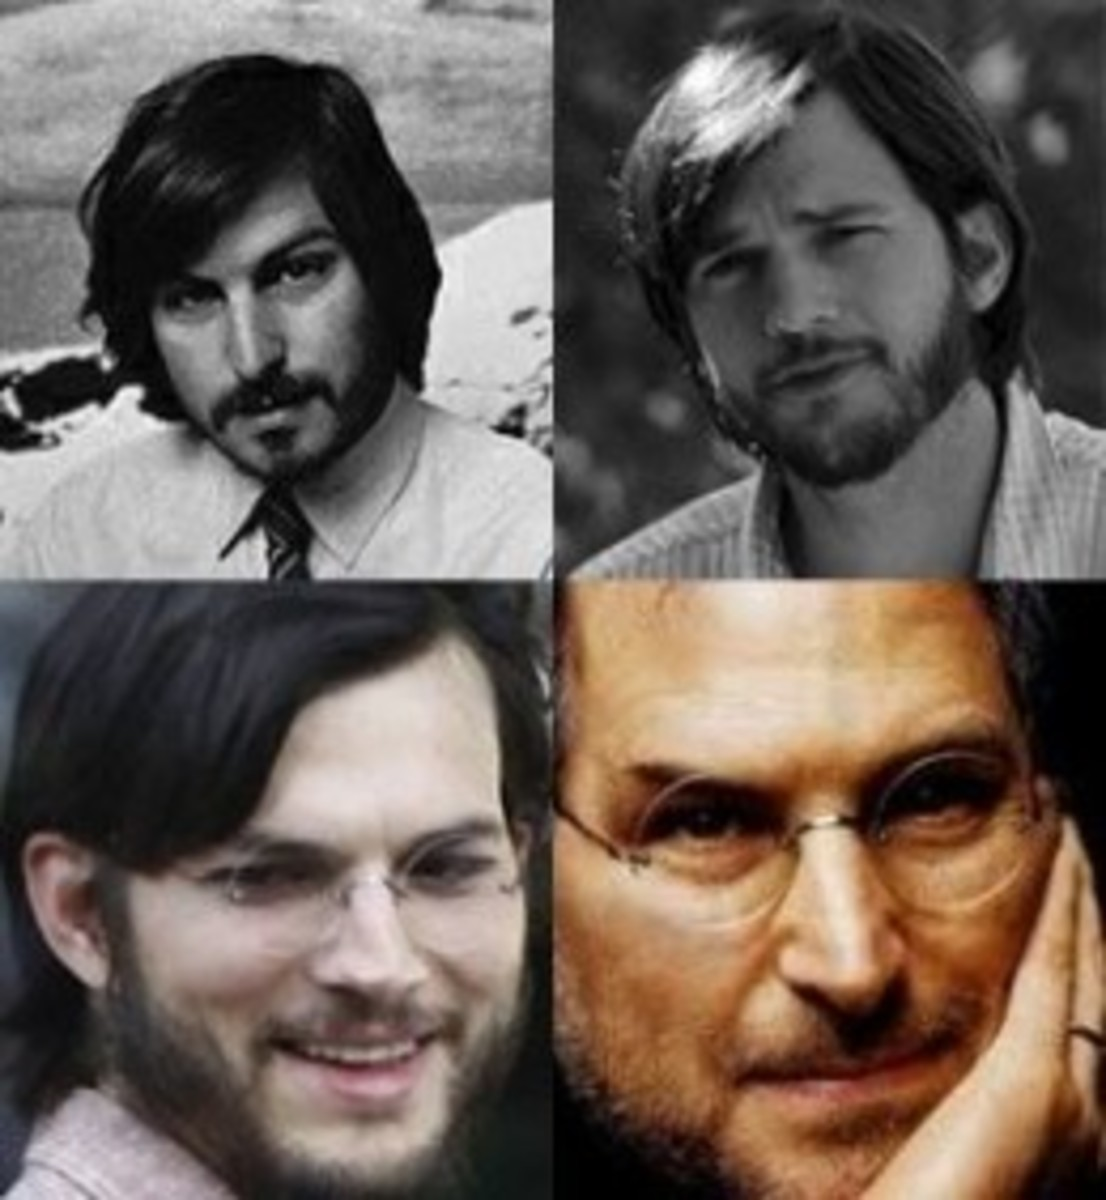 Ashton Kutcher as Steve Jobs. Sporting Young Jobs' facial hair, and 21st Century Jobs' Glasses